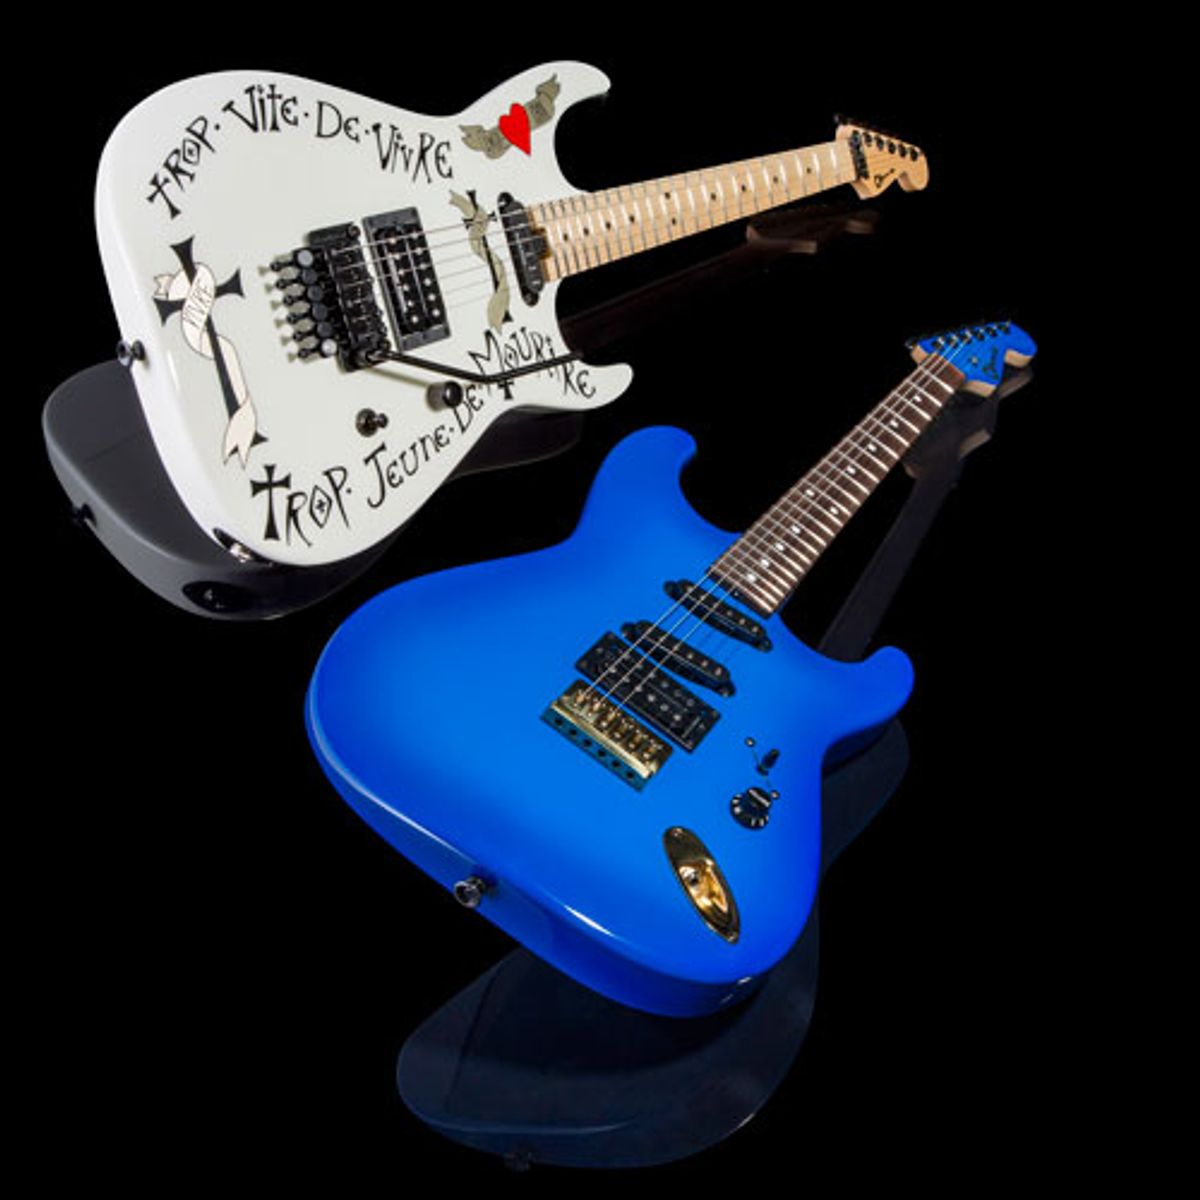 Charvel Unveils Signature Models with Warren DeMartini and Jake E Lee